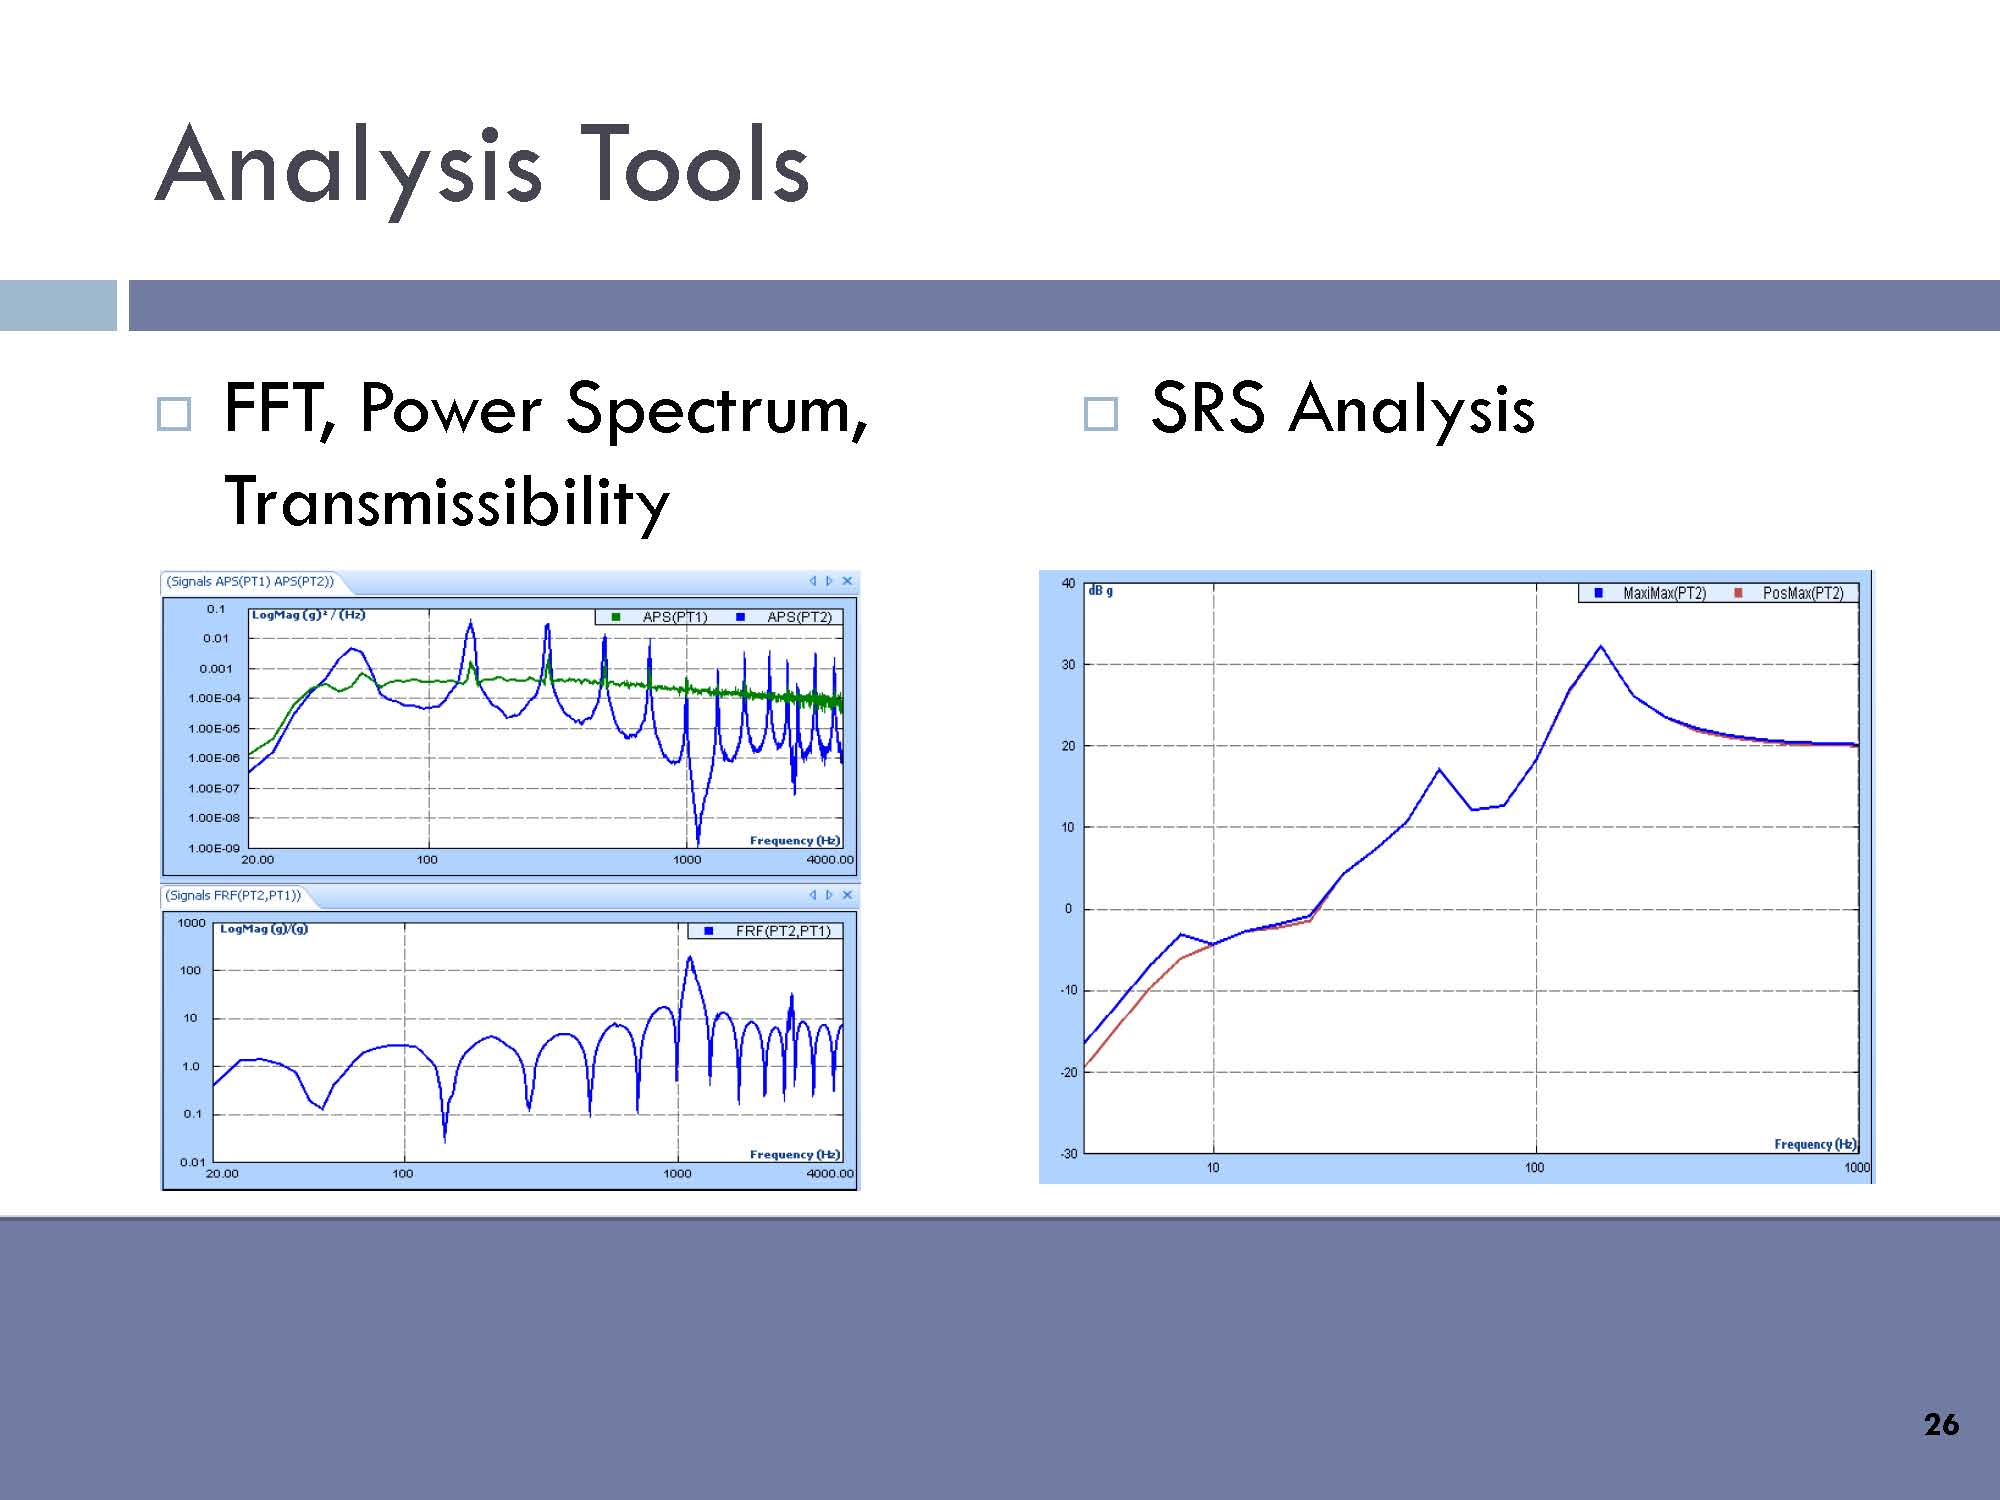 Analysis tools: FFT, Power Spectrum, Transmissibility, SRS Analysis.